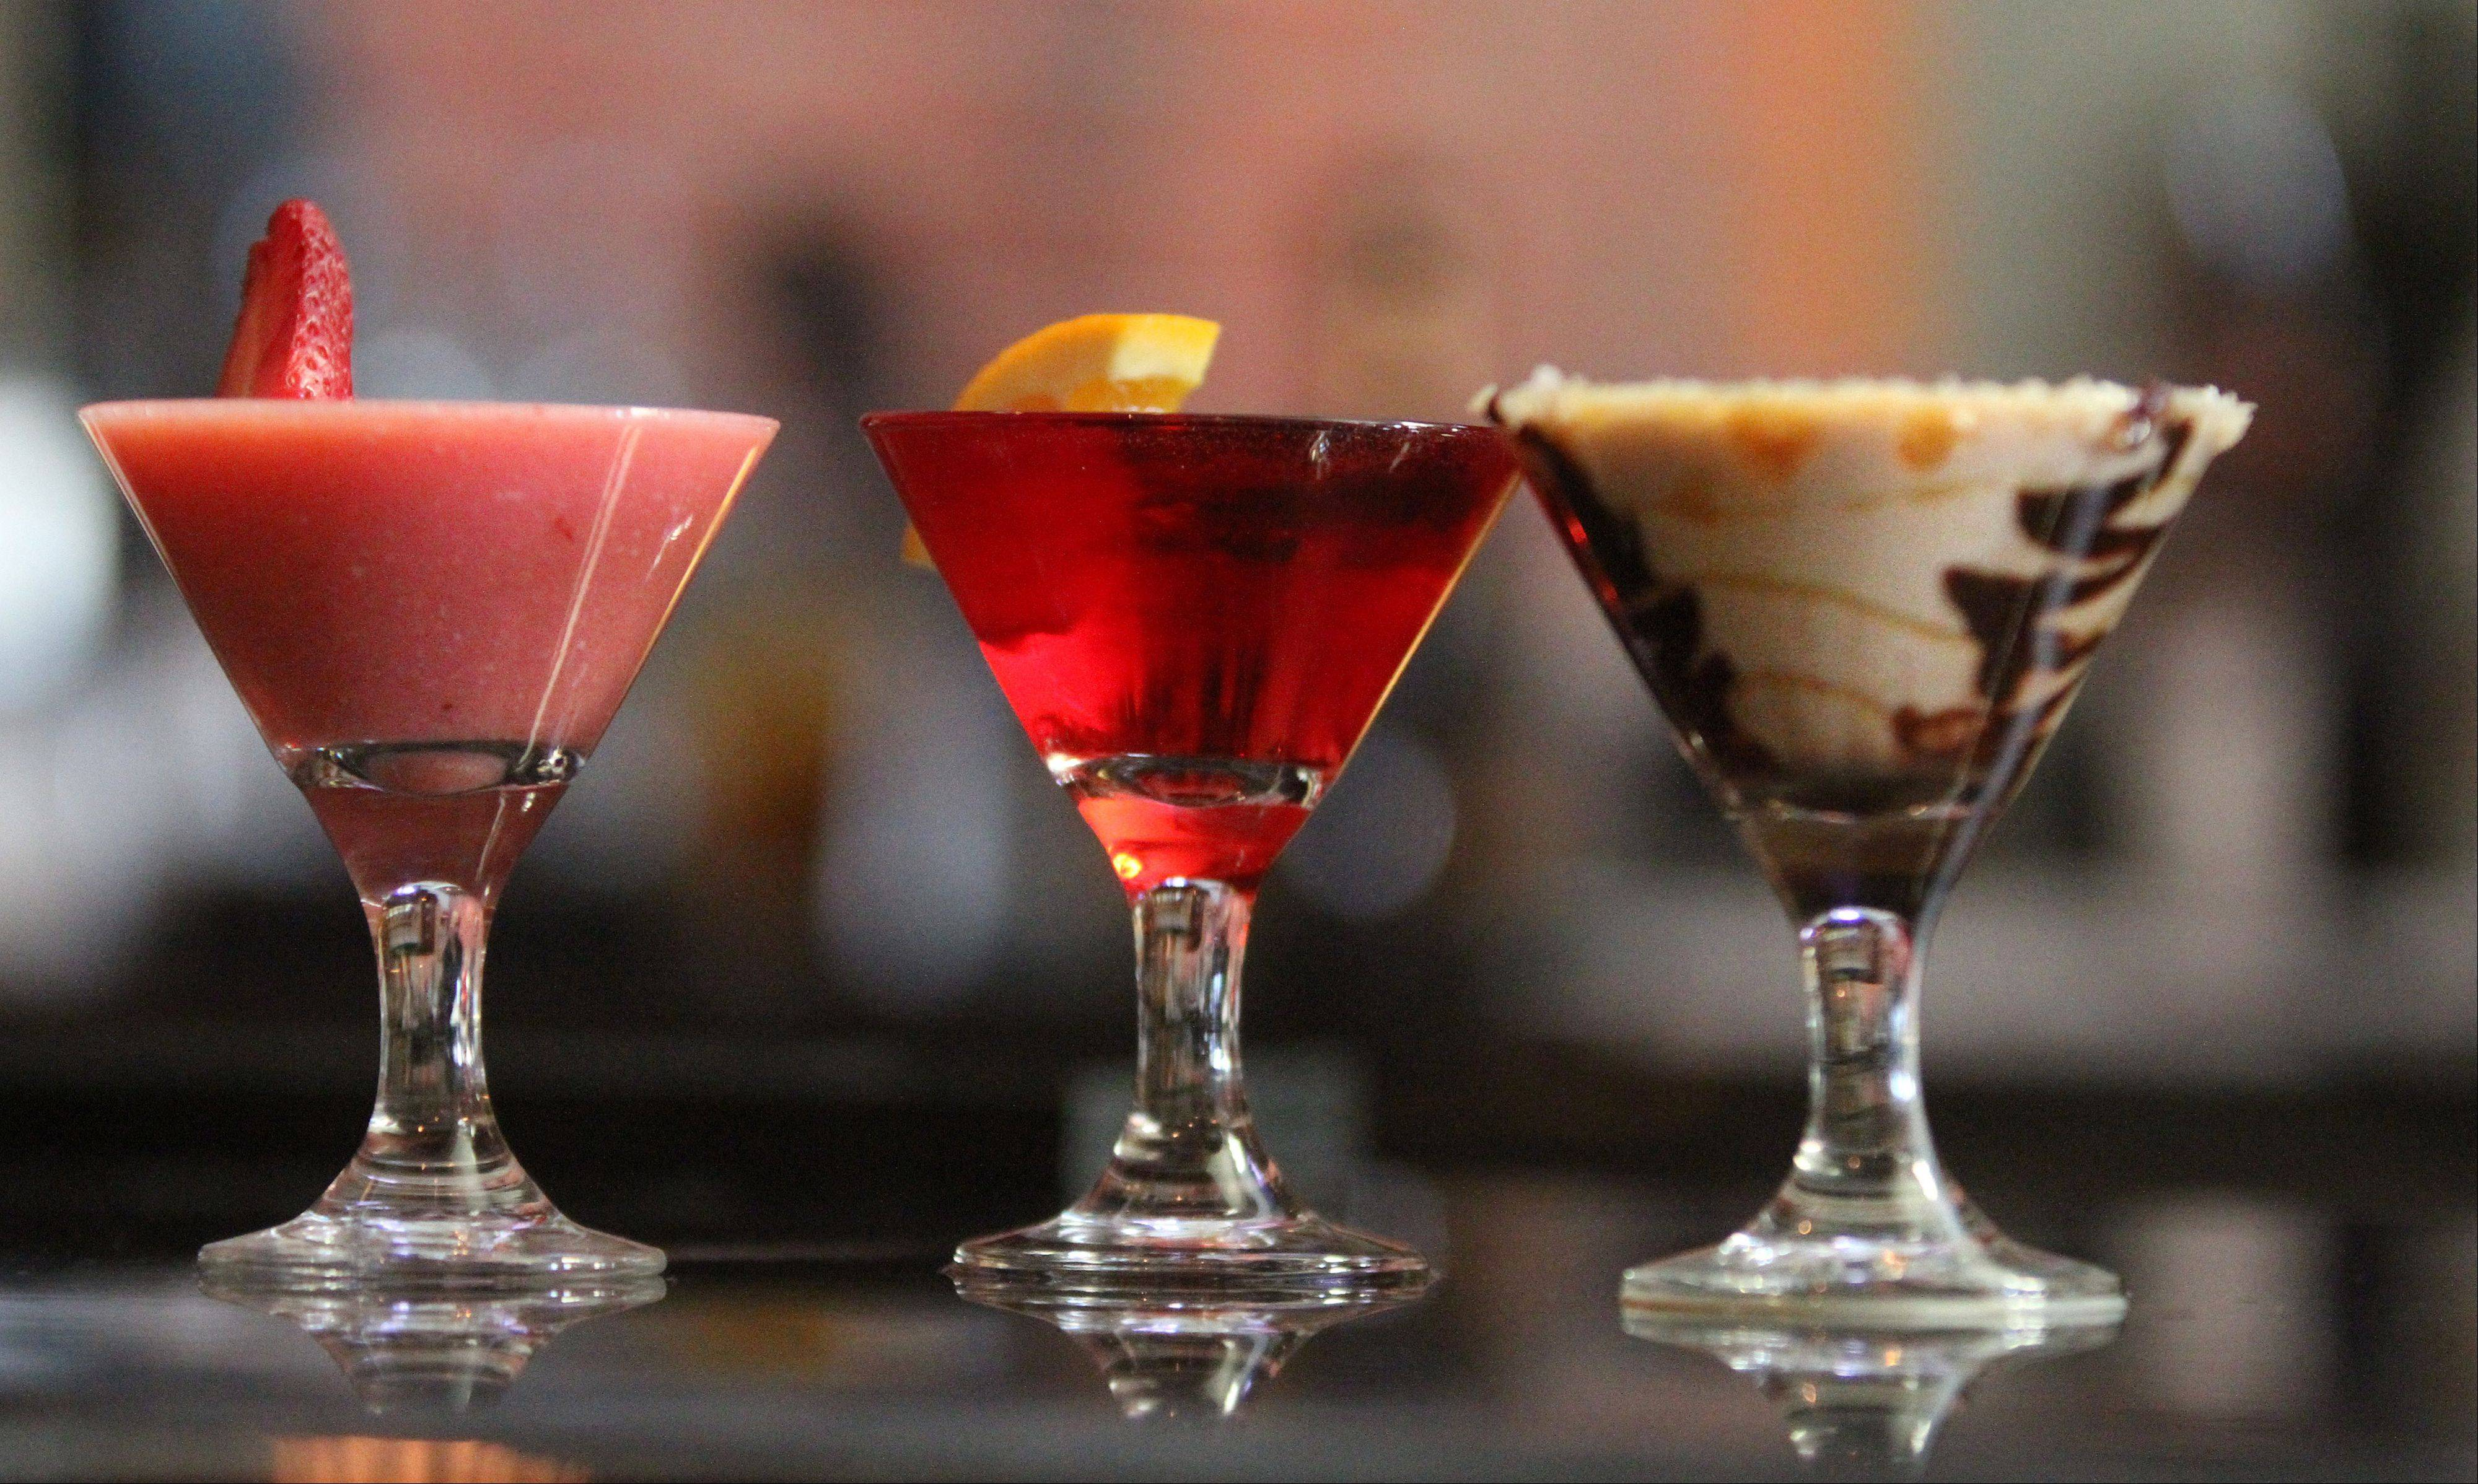 The signature Strawberry Moon, left, pomegranate and salt-carmel-mocha martinis are among the sweet sippers at Strawberry Moon martini bar in Wauconda.